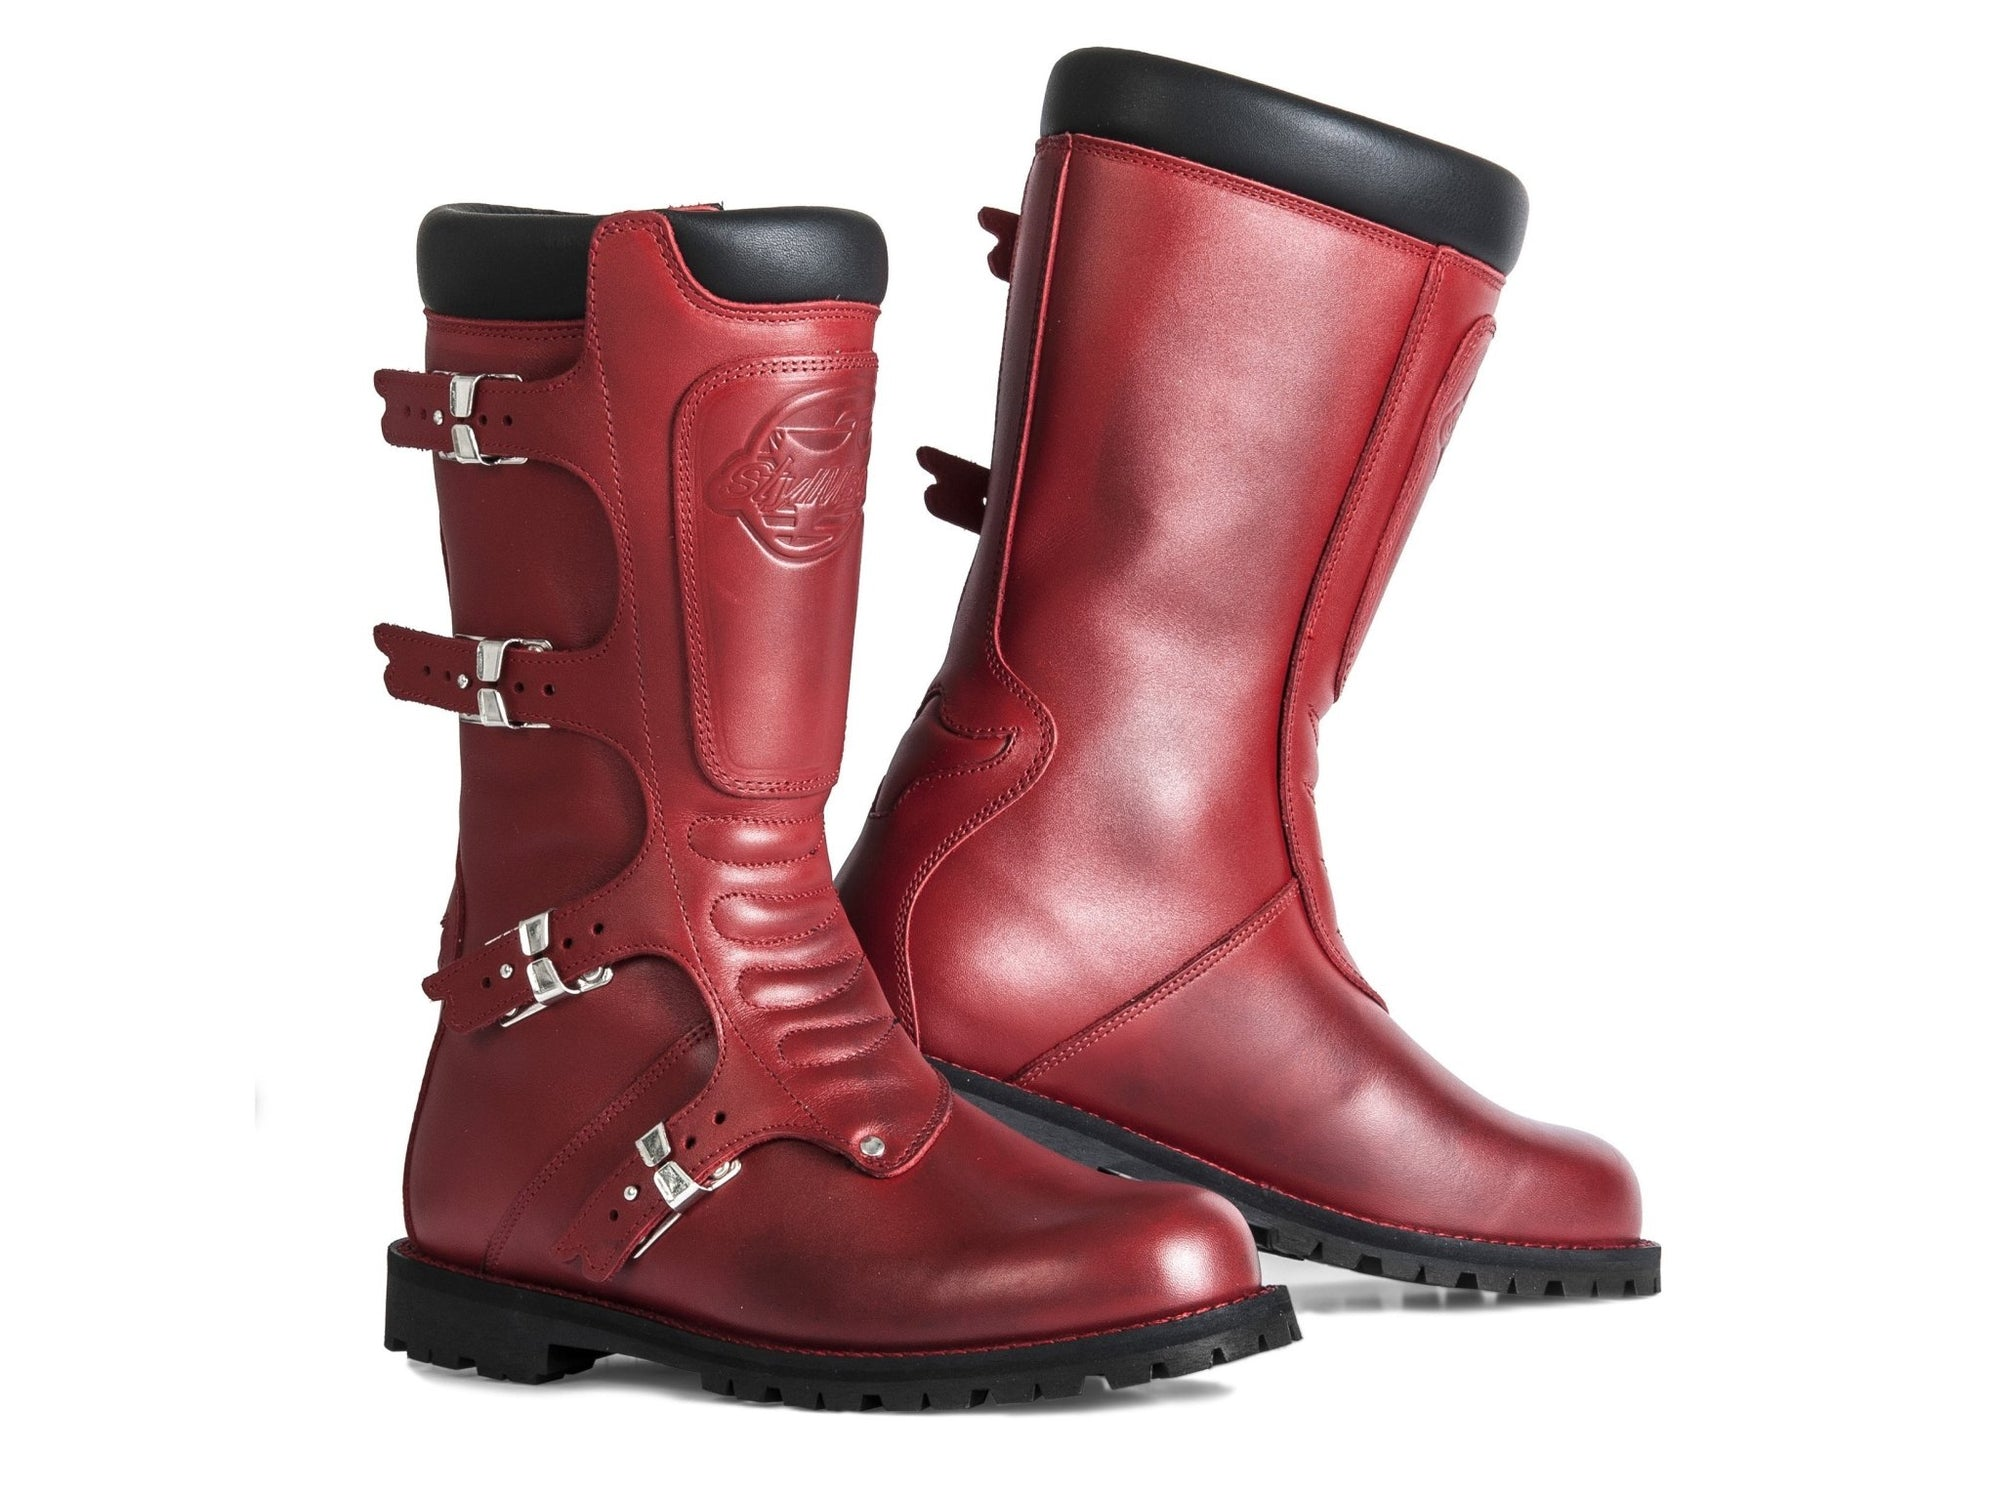 Stylmartin - Stylmartin Continental WP Touring in Red - Boots - Salt Flats Clothing